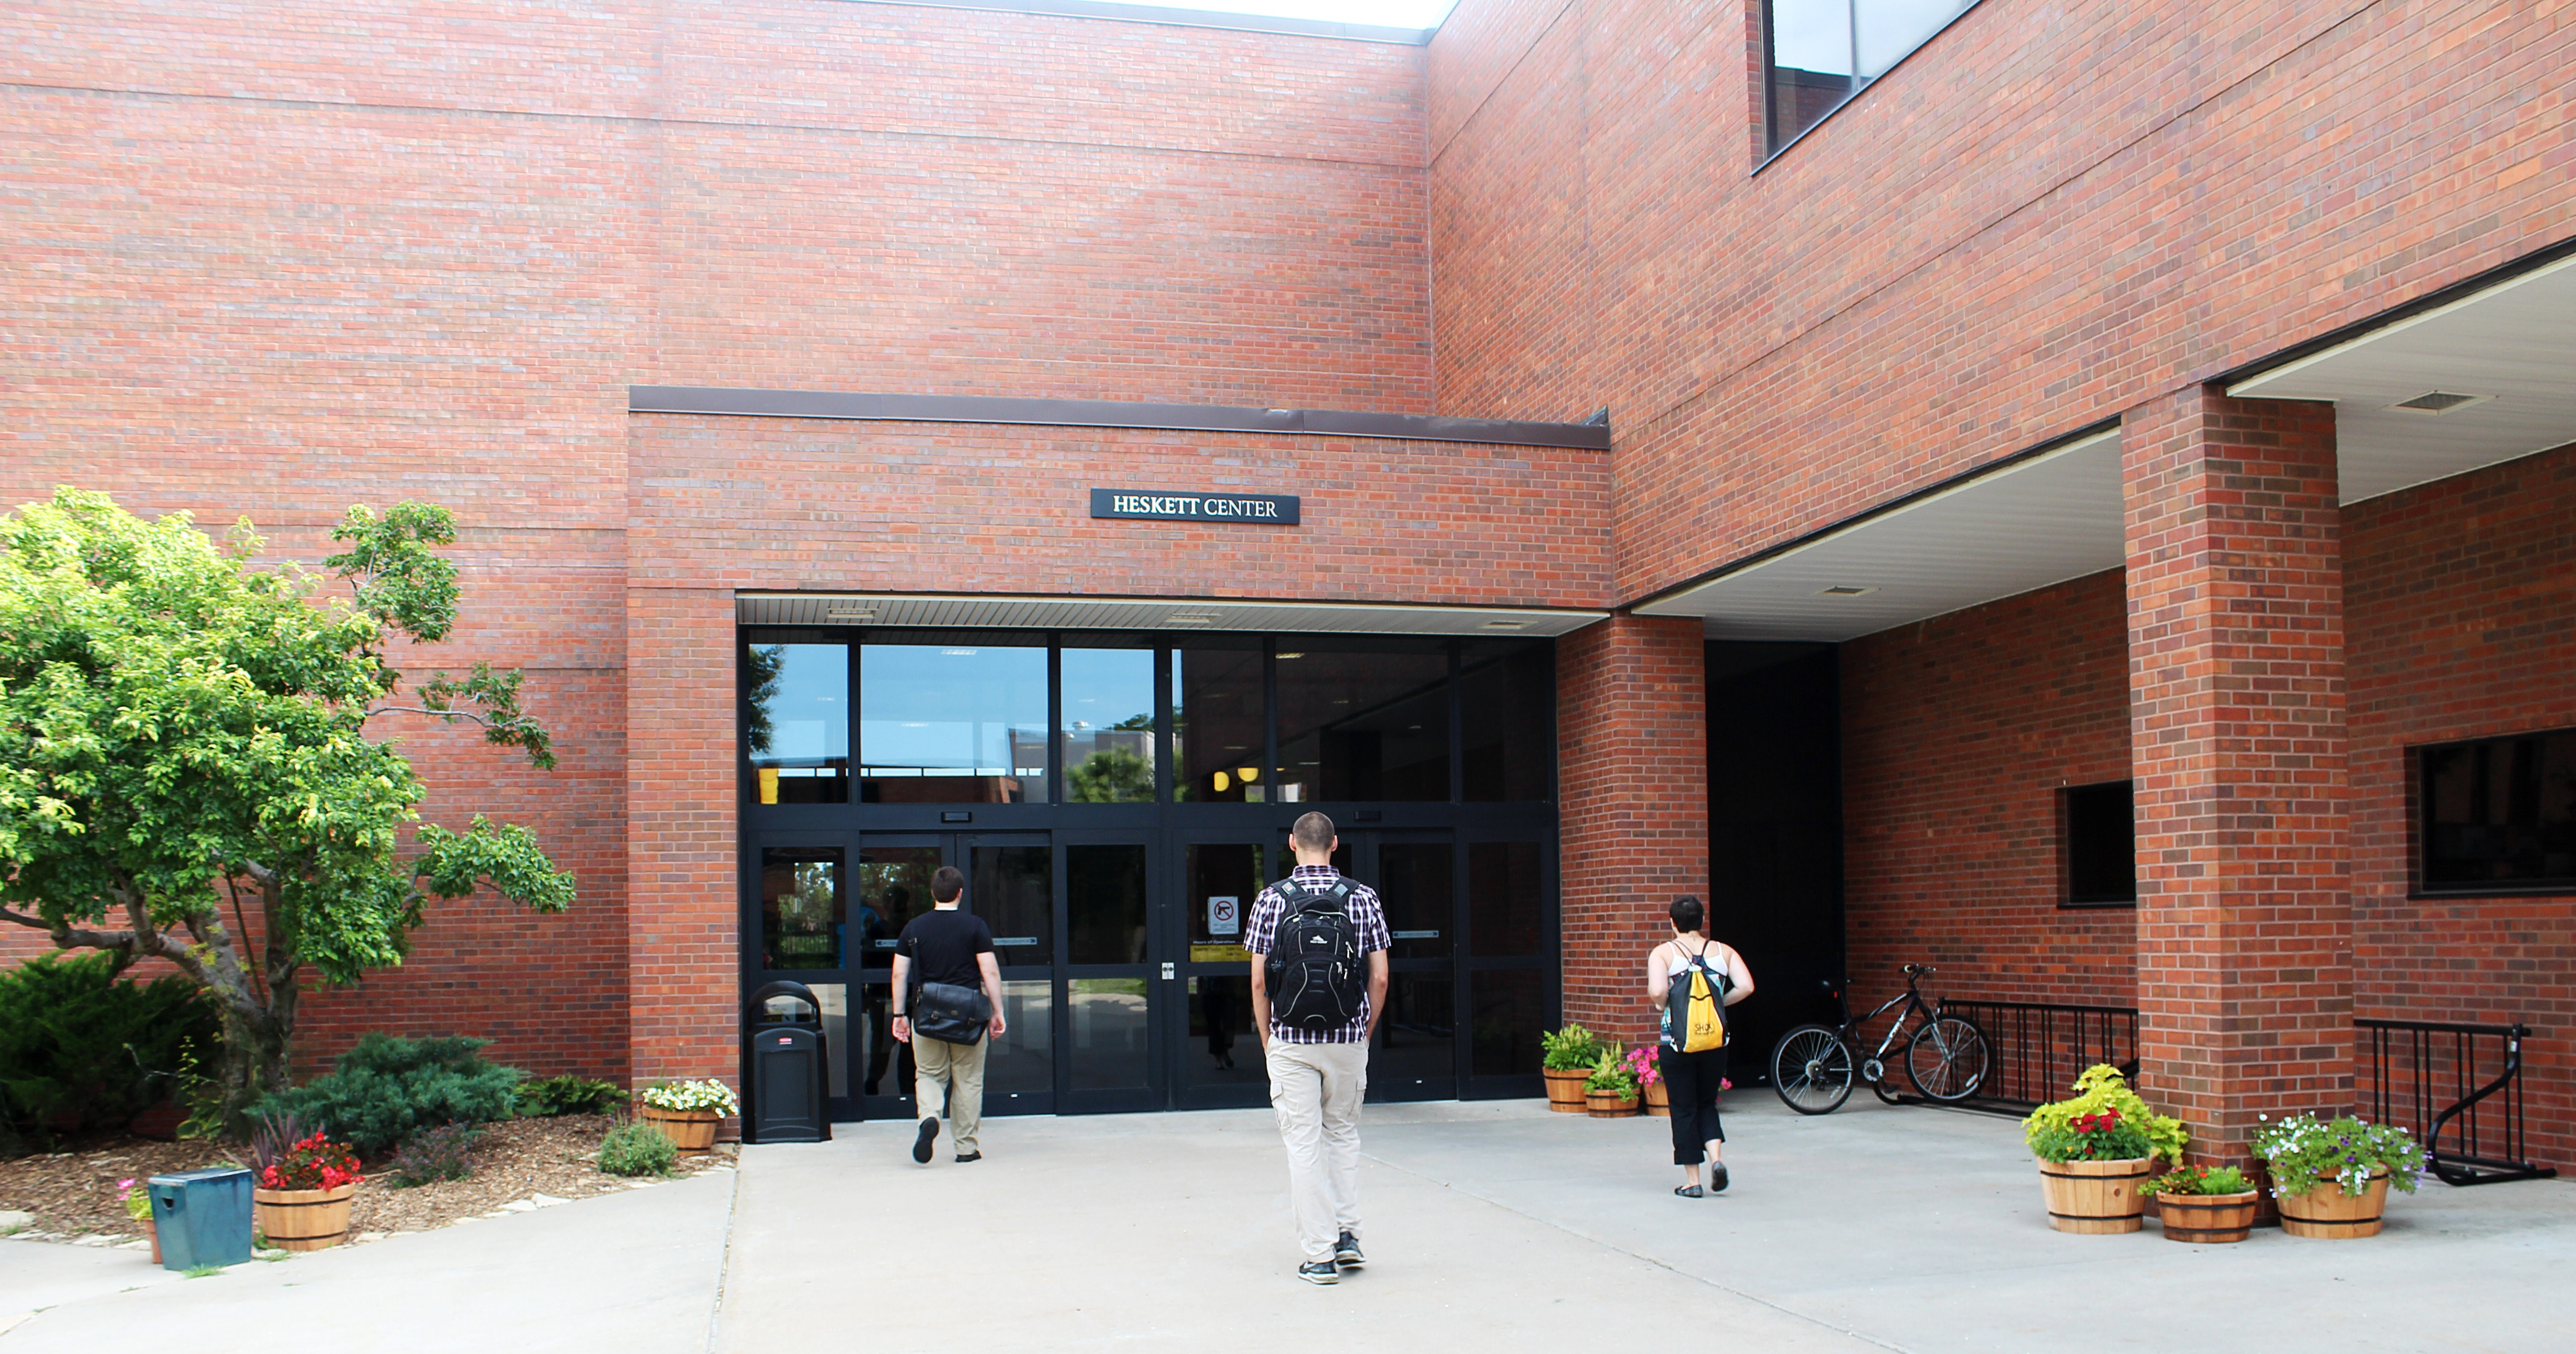 three students heading for the entrance of the Heskett Center